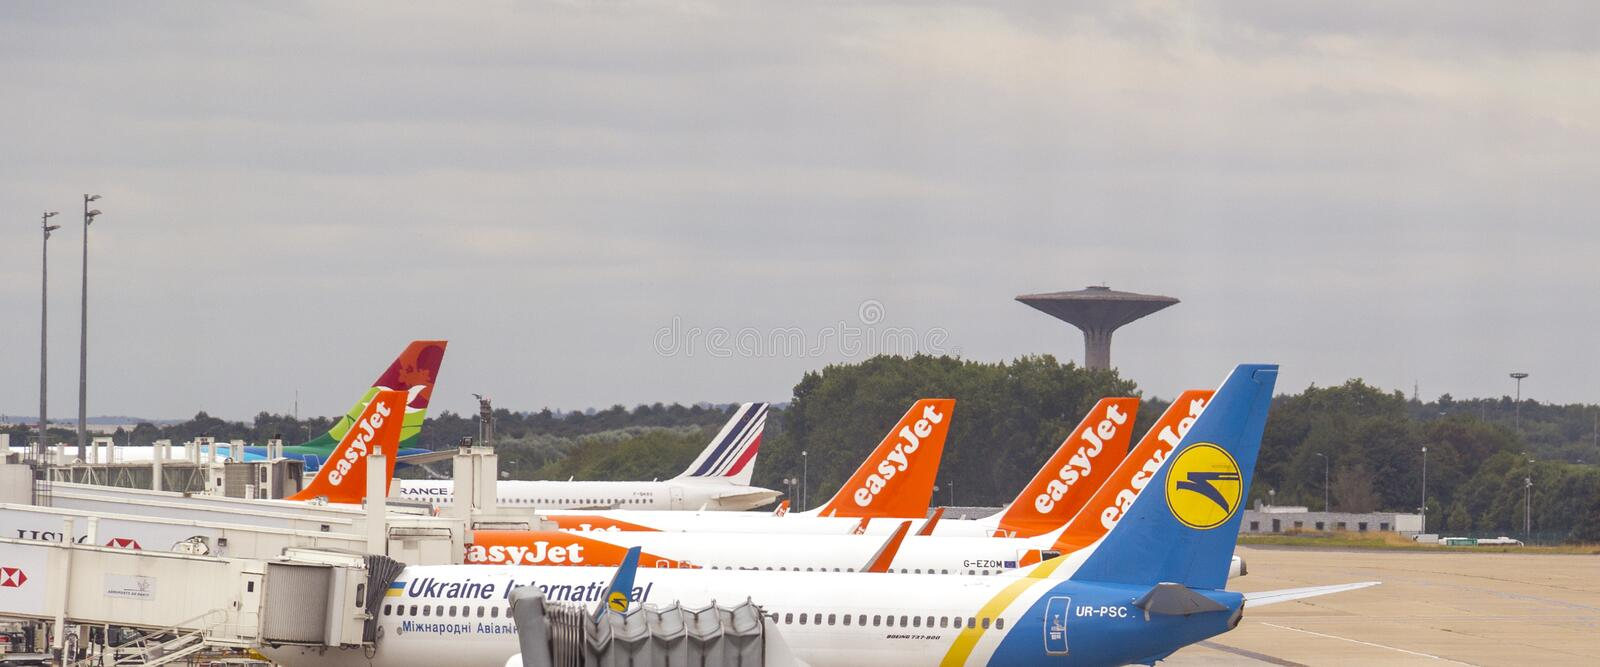 PARIS, FRANCE -1 March 2020- View of airplanes of easyjet airfrance ukraine at the Roissy Charles de Gaulle International Airport. PARIS, FRANCE -1 March 2020 stock image